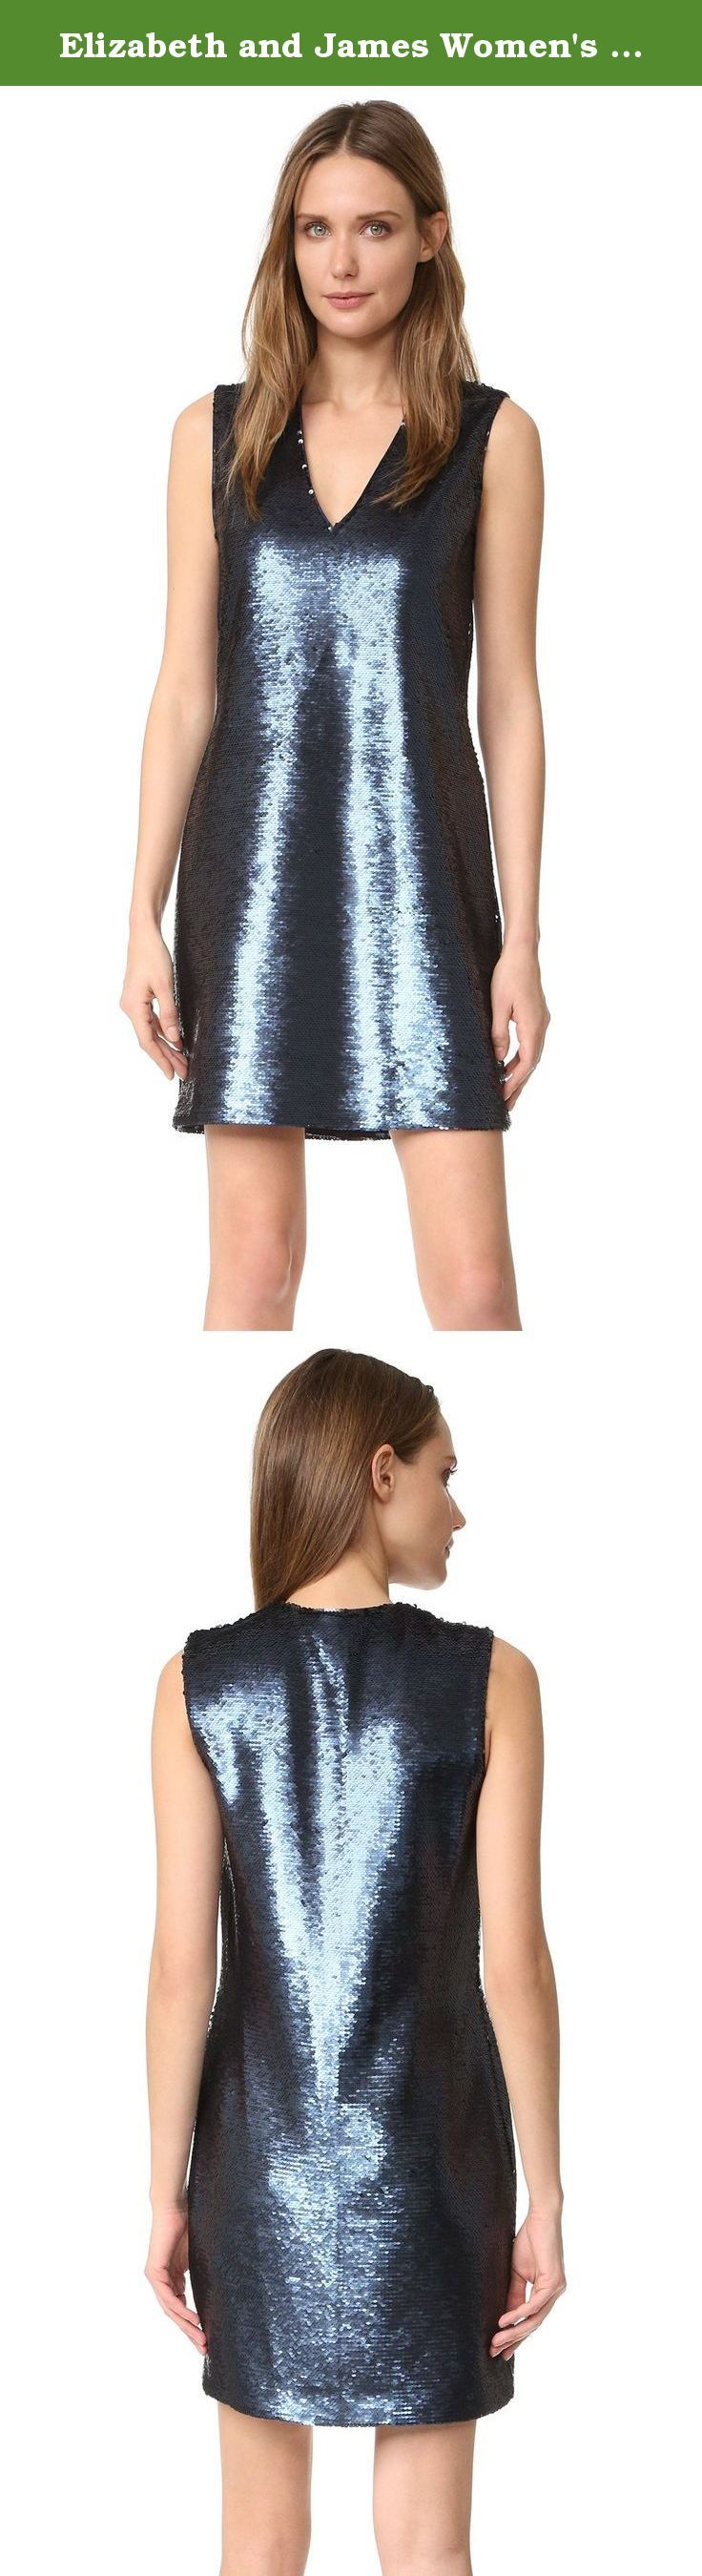 Elizabeth and James Women's Wesley Deep V Sleeveless Sequin Dress, Black/Navy, 2. This party-ready Elizabeth and James mini dress is layered with shimmering sequins. Deep V neckline. Lined.